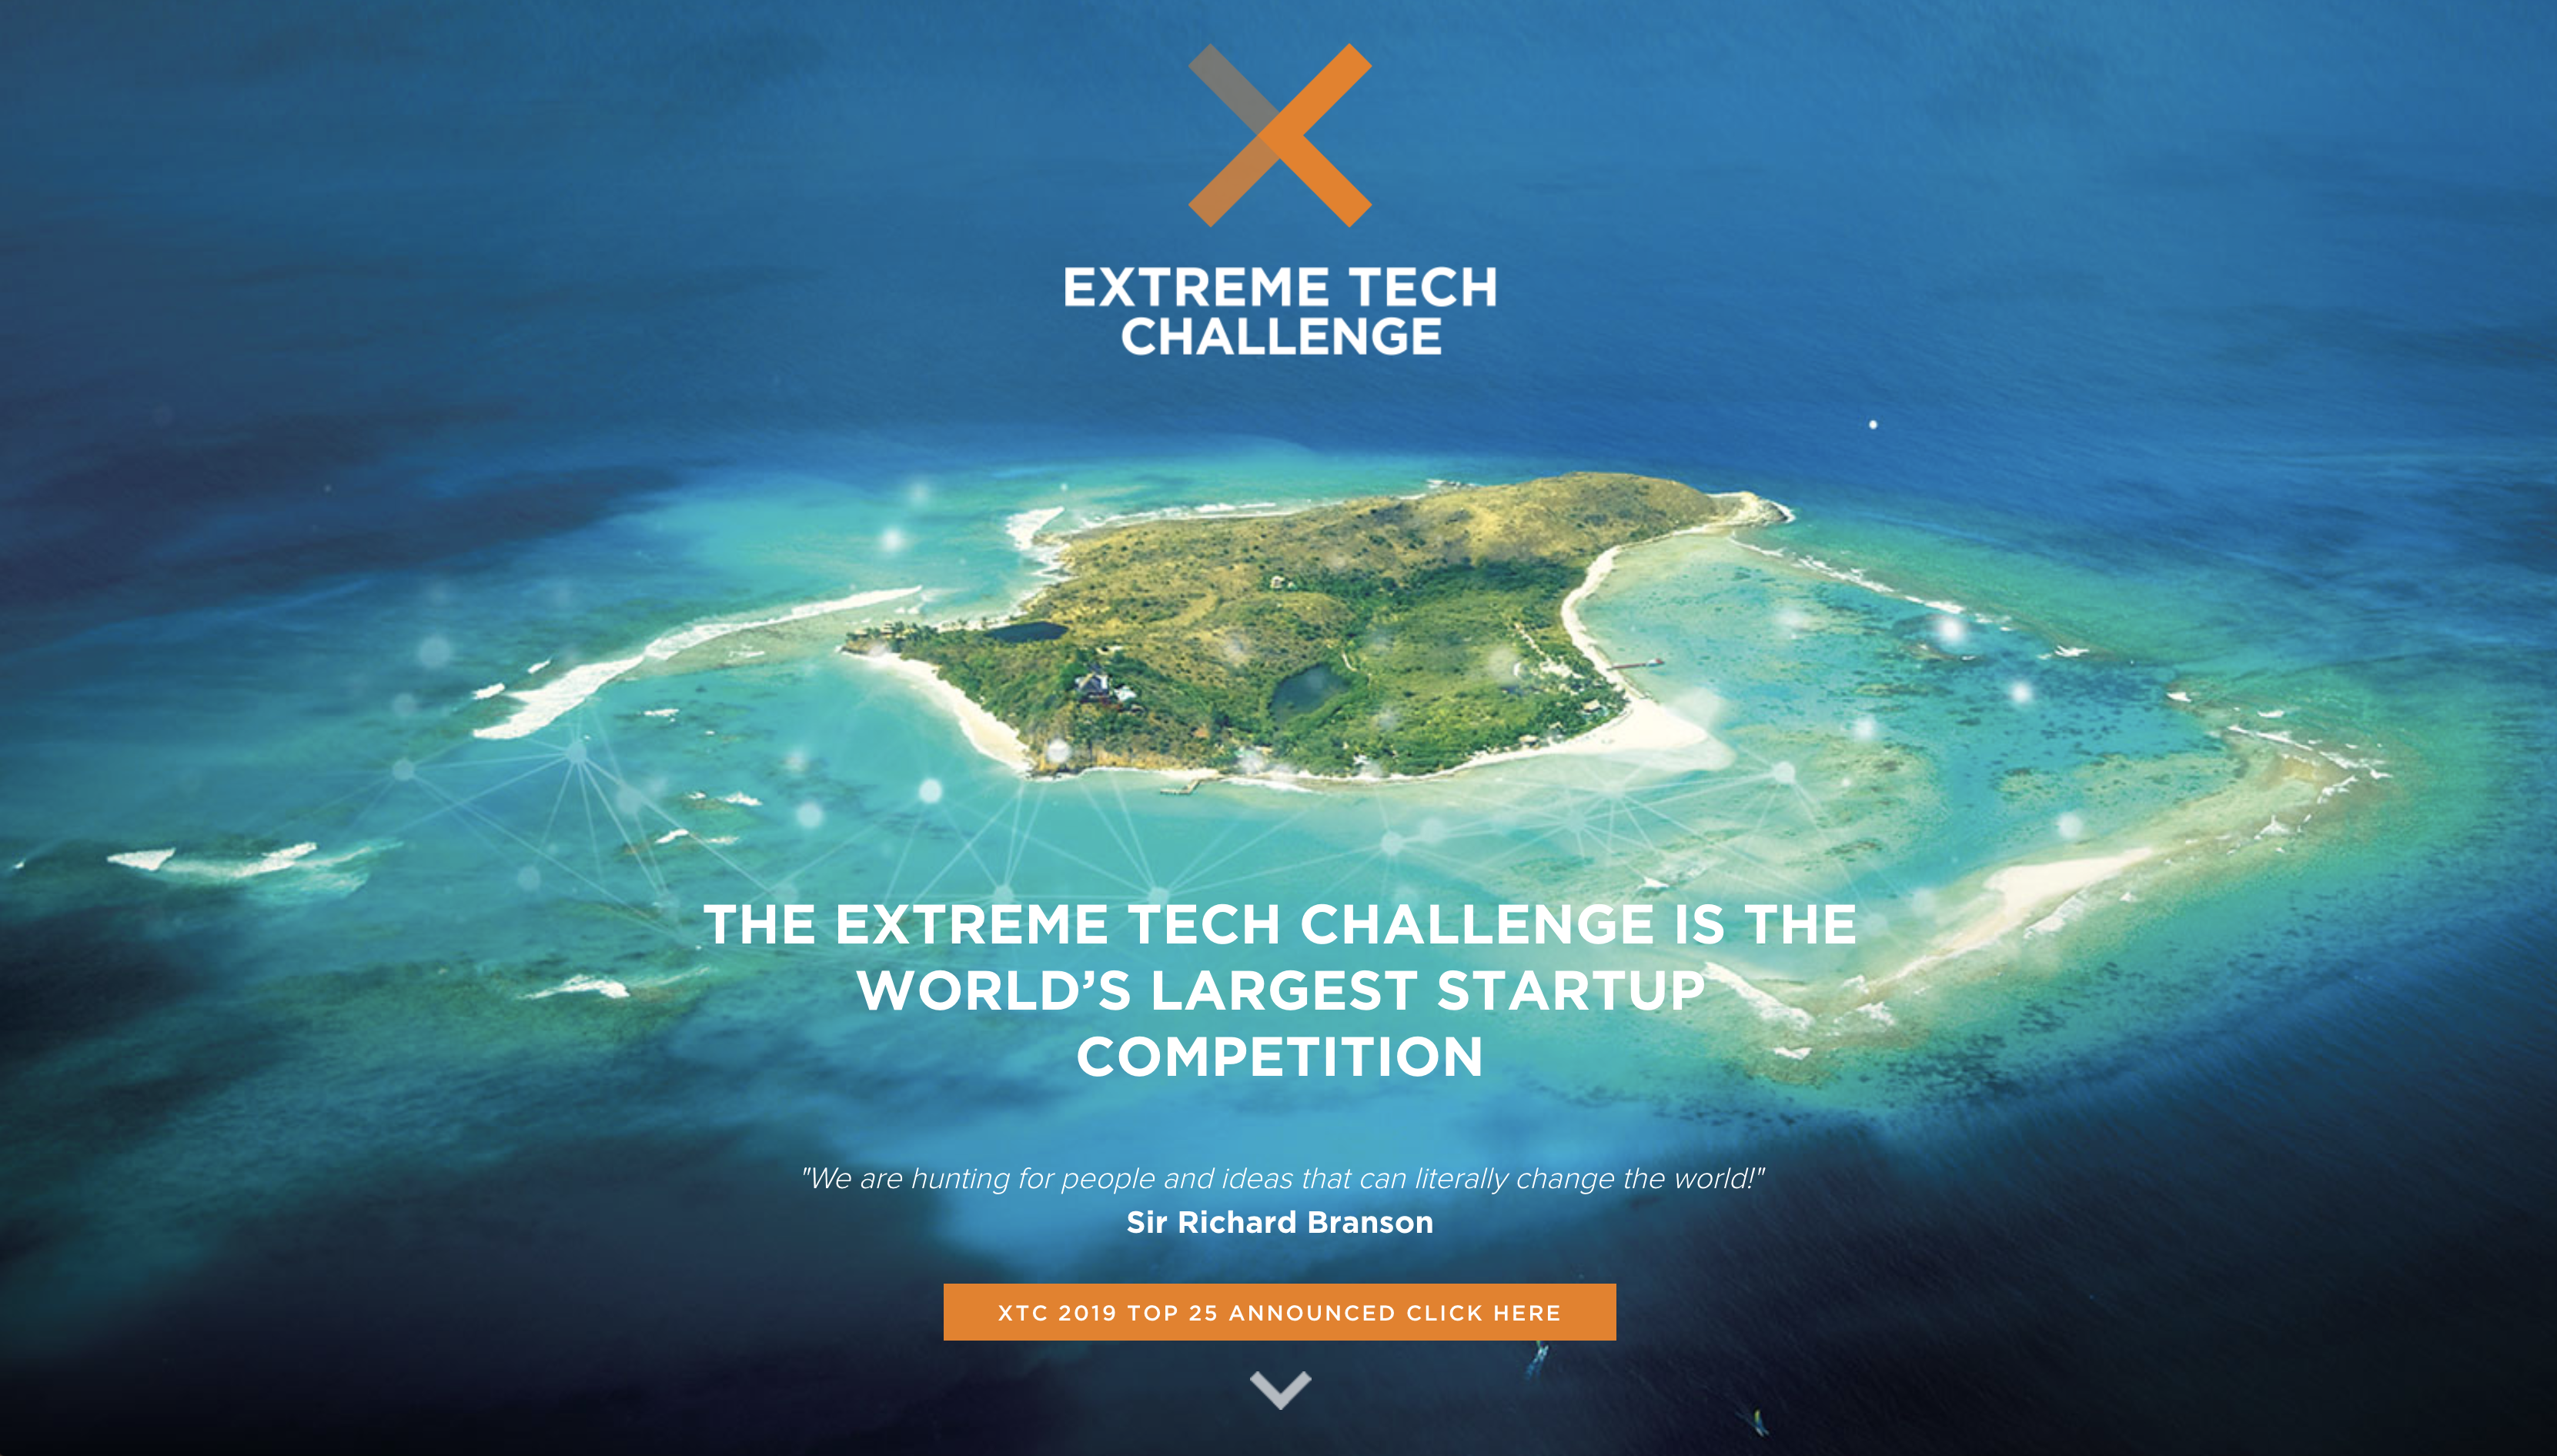 Extreme-tech-challenge